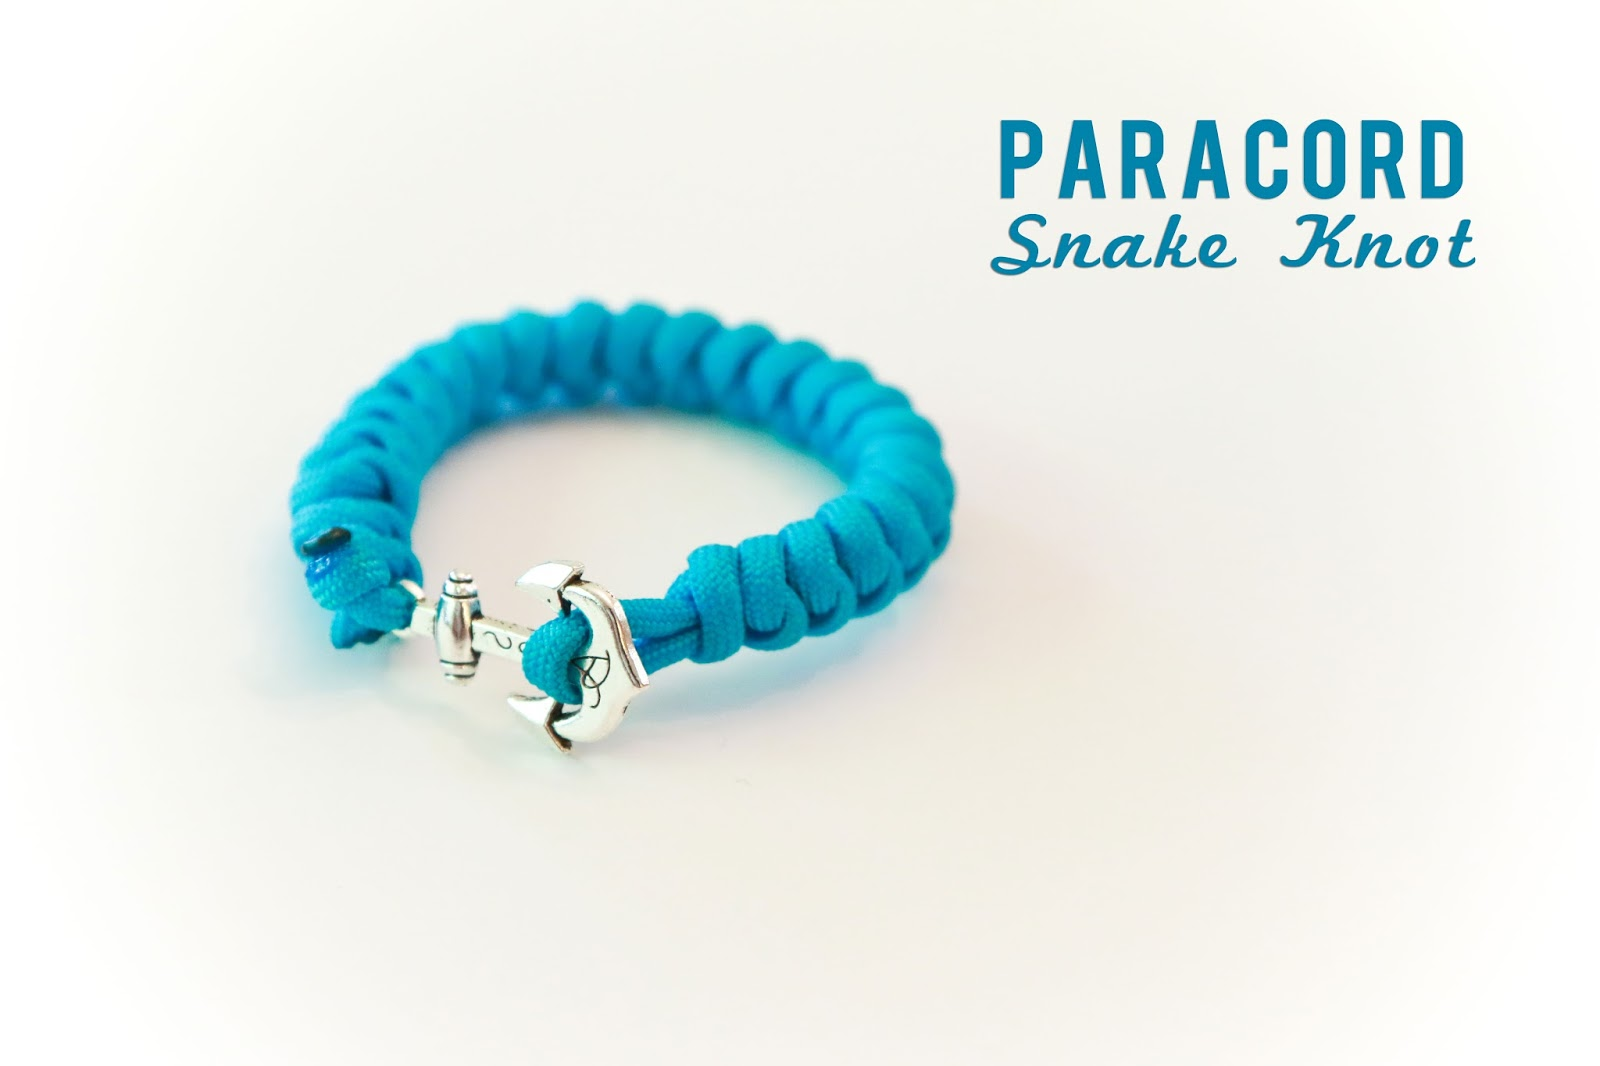 Paracord Snake Knot with Anchor @craftsavvy #craftwarehous #paracord #paracordbracelets #diy